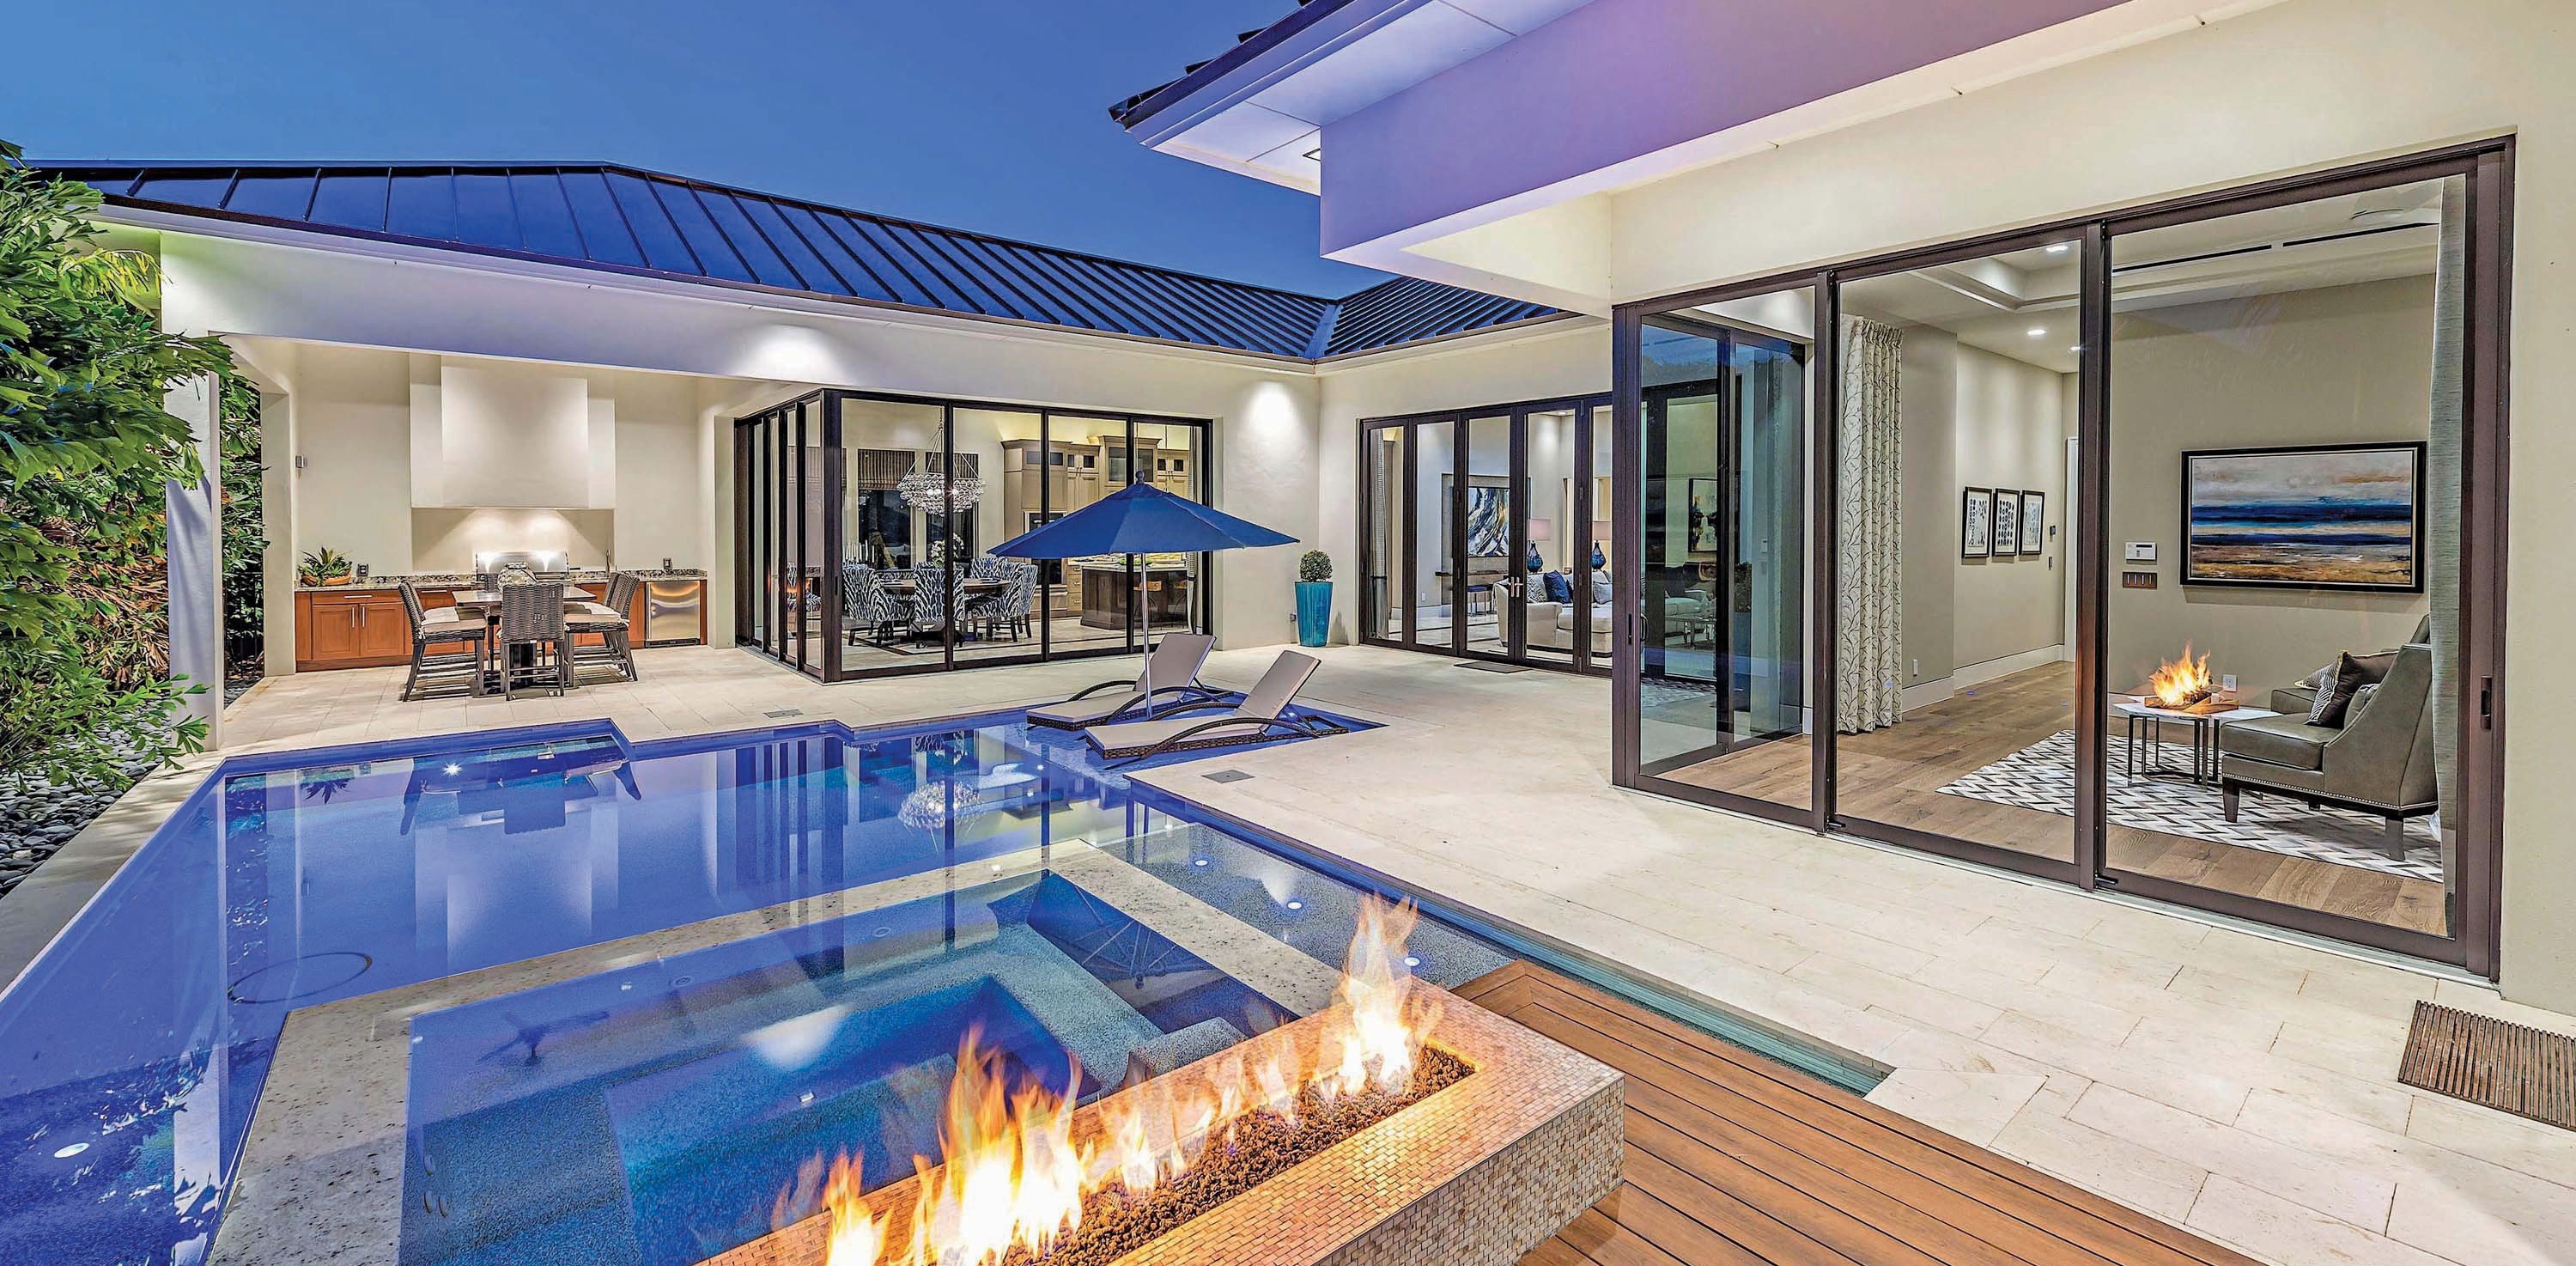 Enchanting Swimming Pool Designs Naples Fl Images Simple Design Home Levitra